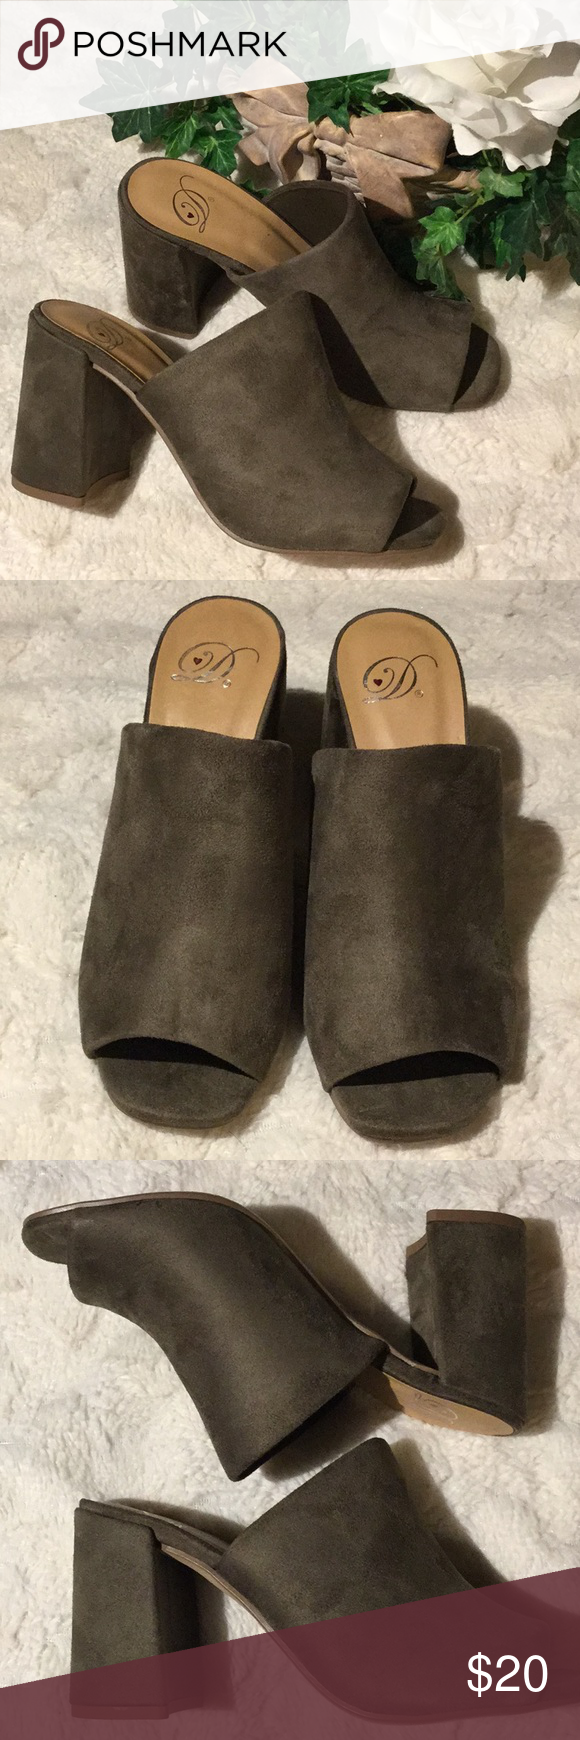 c785a1929 🆕NWOT Derek Heart Olive Faux Suede Chunky Mules New without tags or box.  Never worn. Olive Green. Peep toe